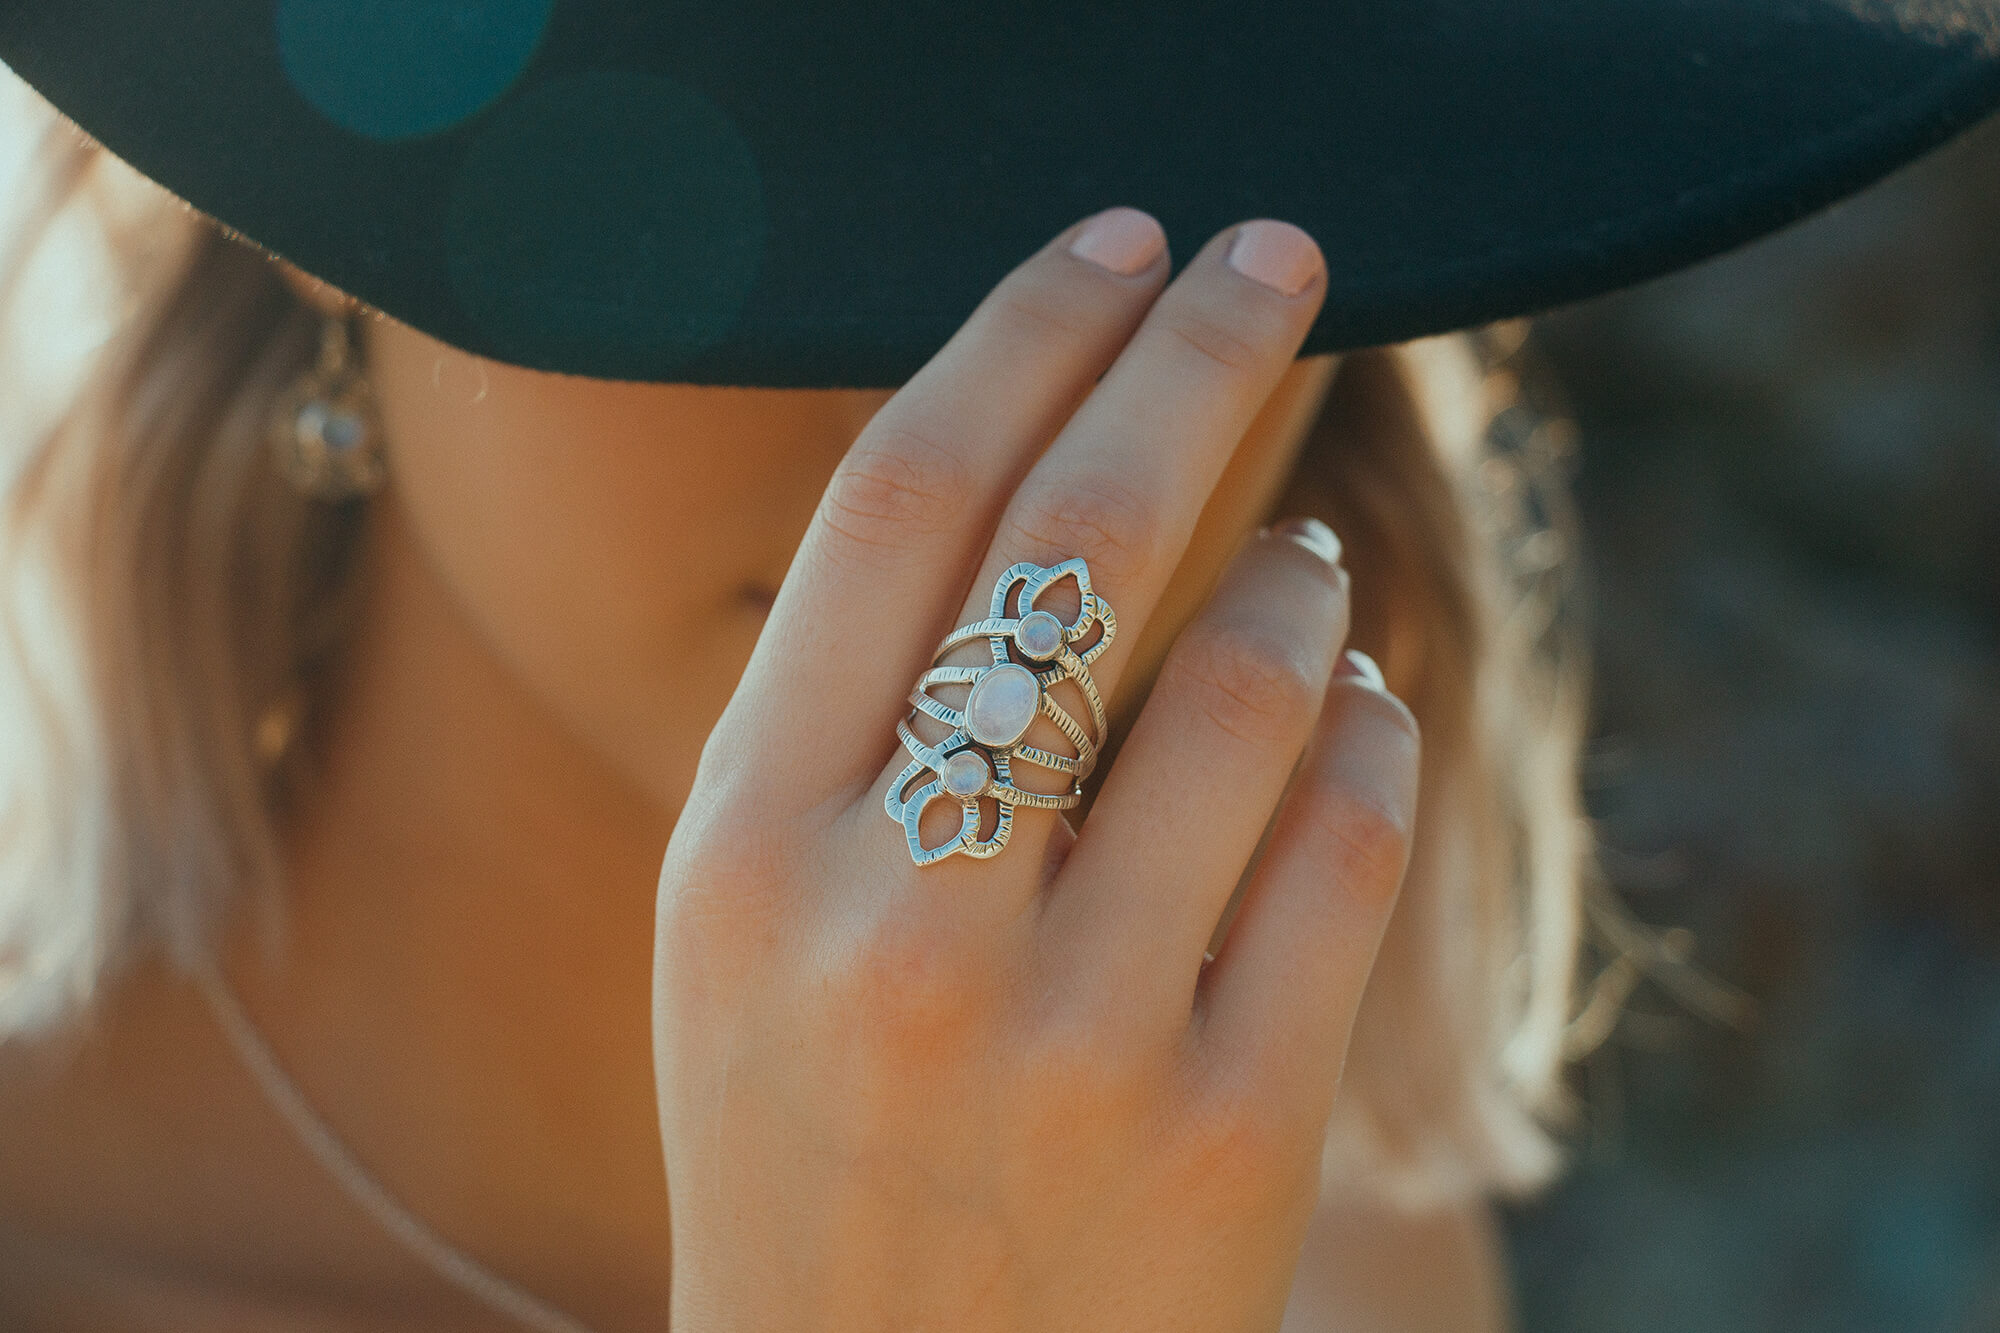 Love-Lara-Jeweller-Jewellery-Rings-Earrings-Jeweller-Jewellery-Rings